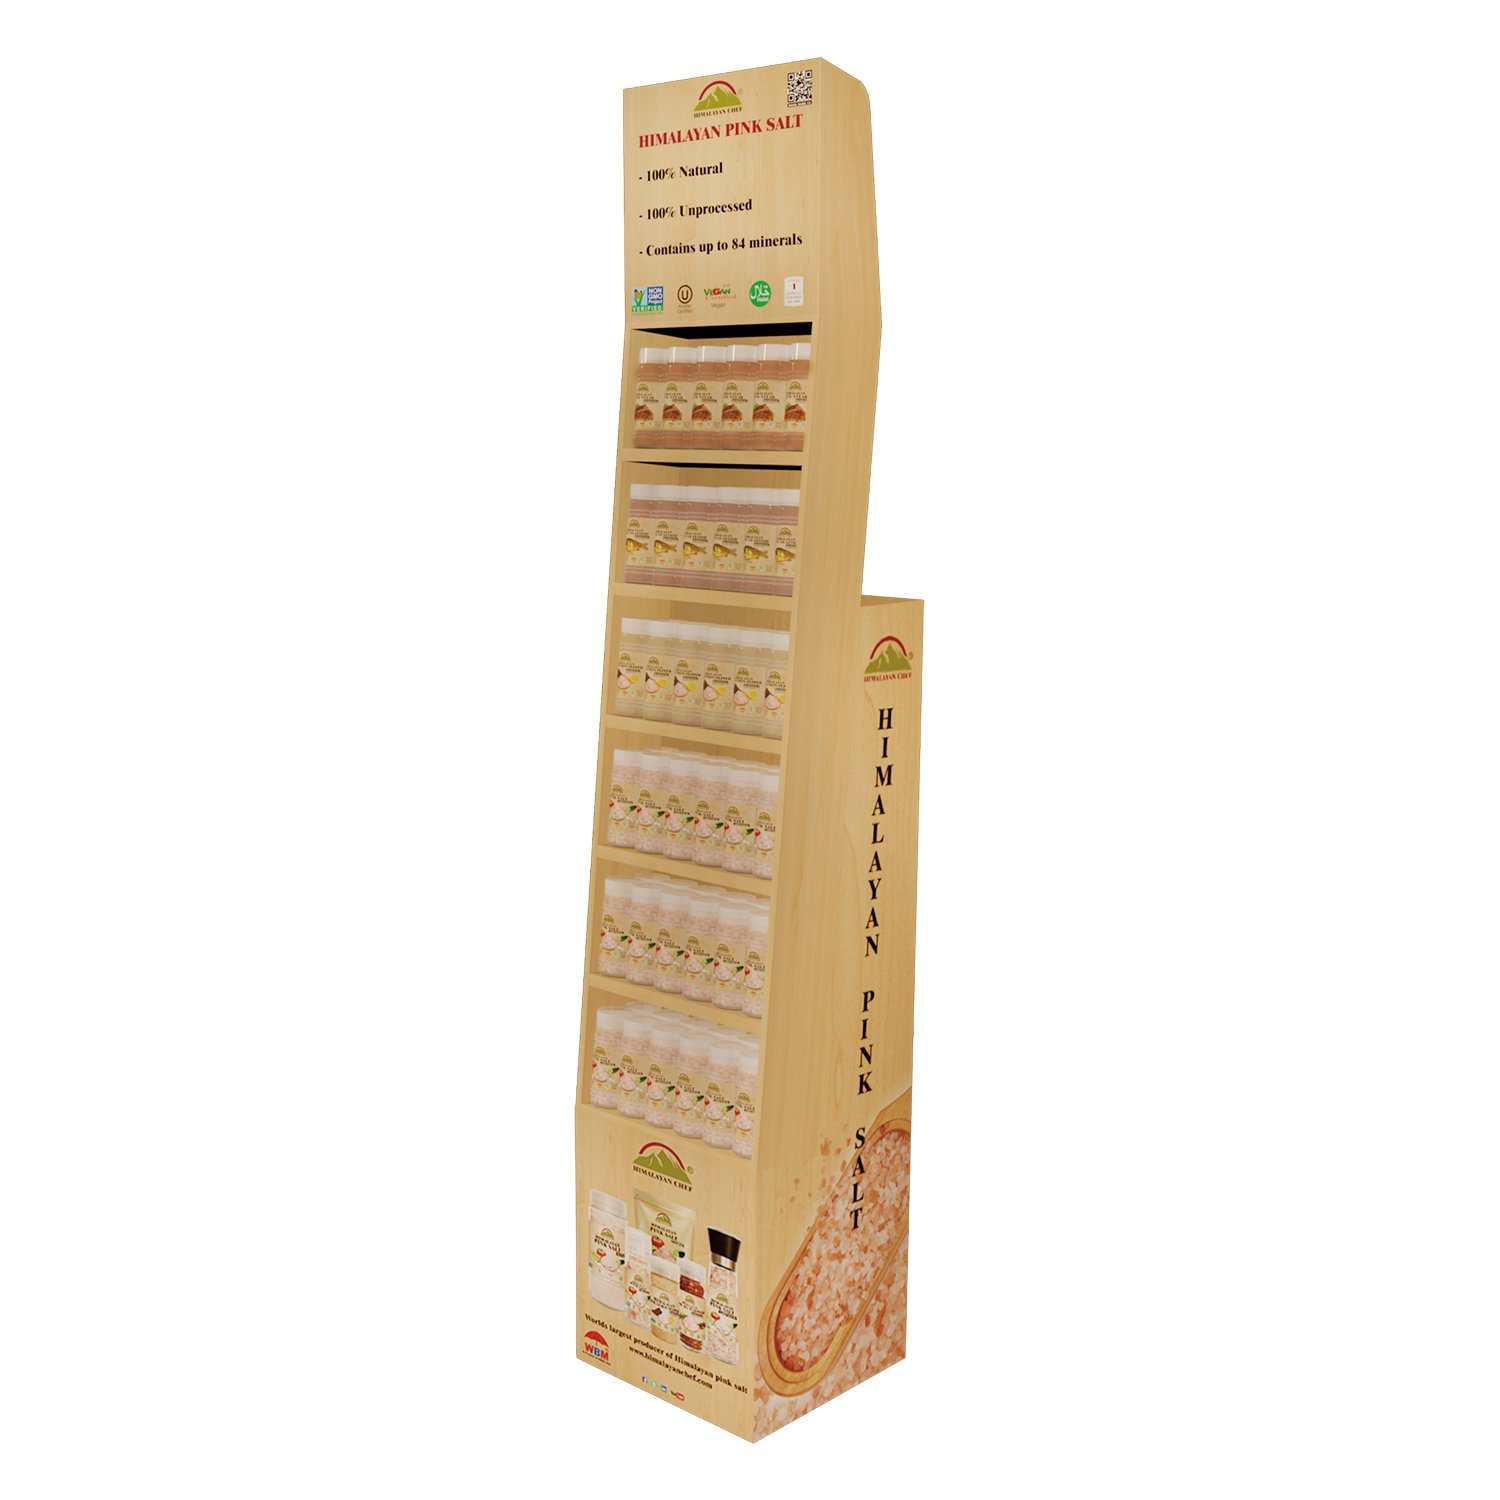 Shipper Display Shelf for Shakers & Seasonings - 72 Pieces Total 36 pcs of 5300, 6 pcs each of 5331,5332,5333,5334,5335,5336